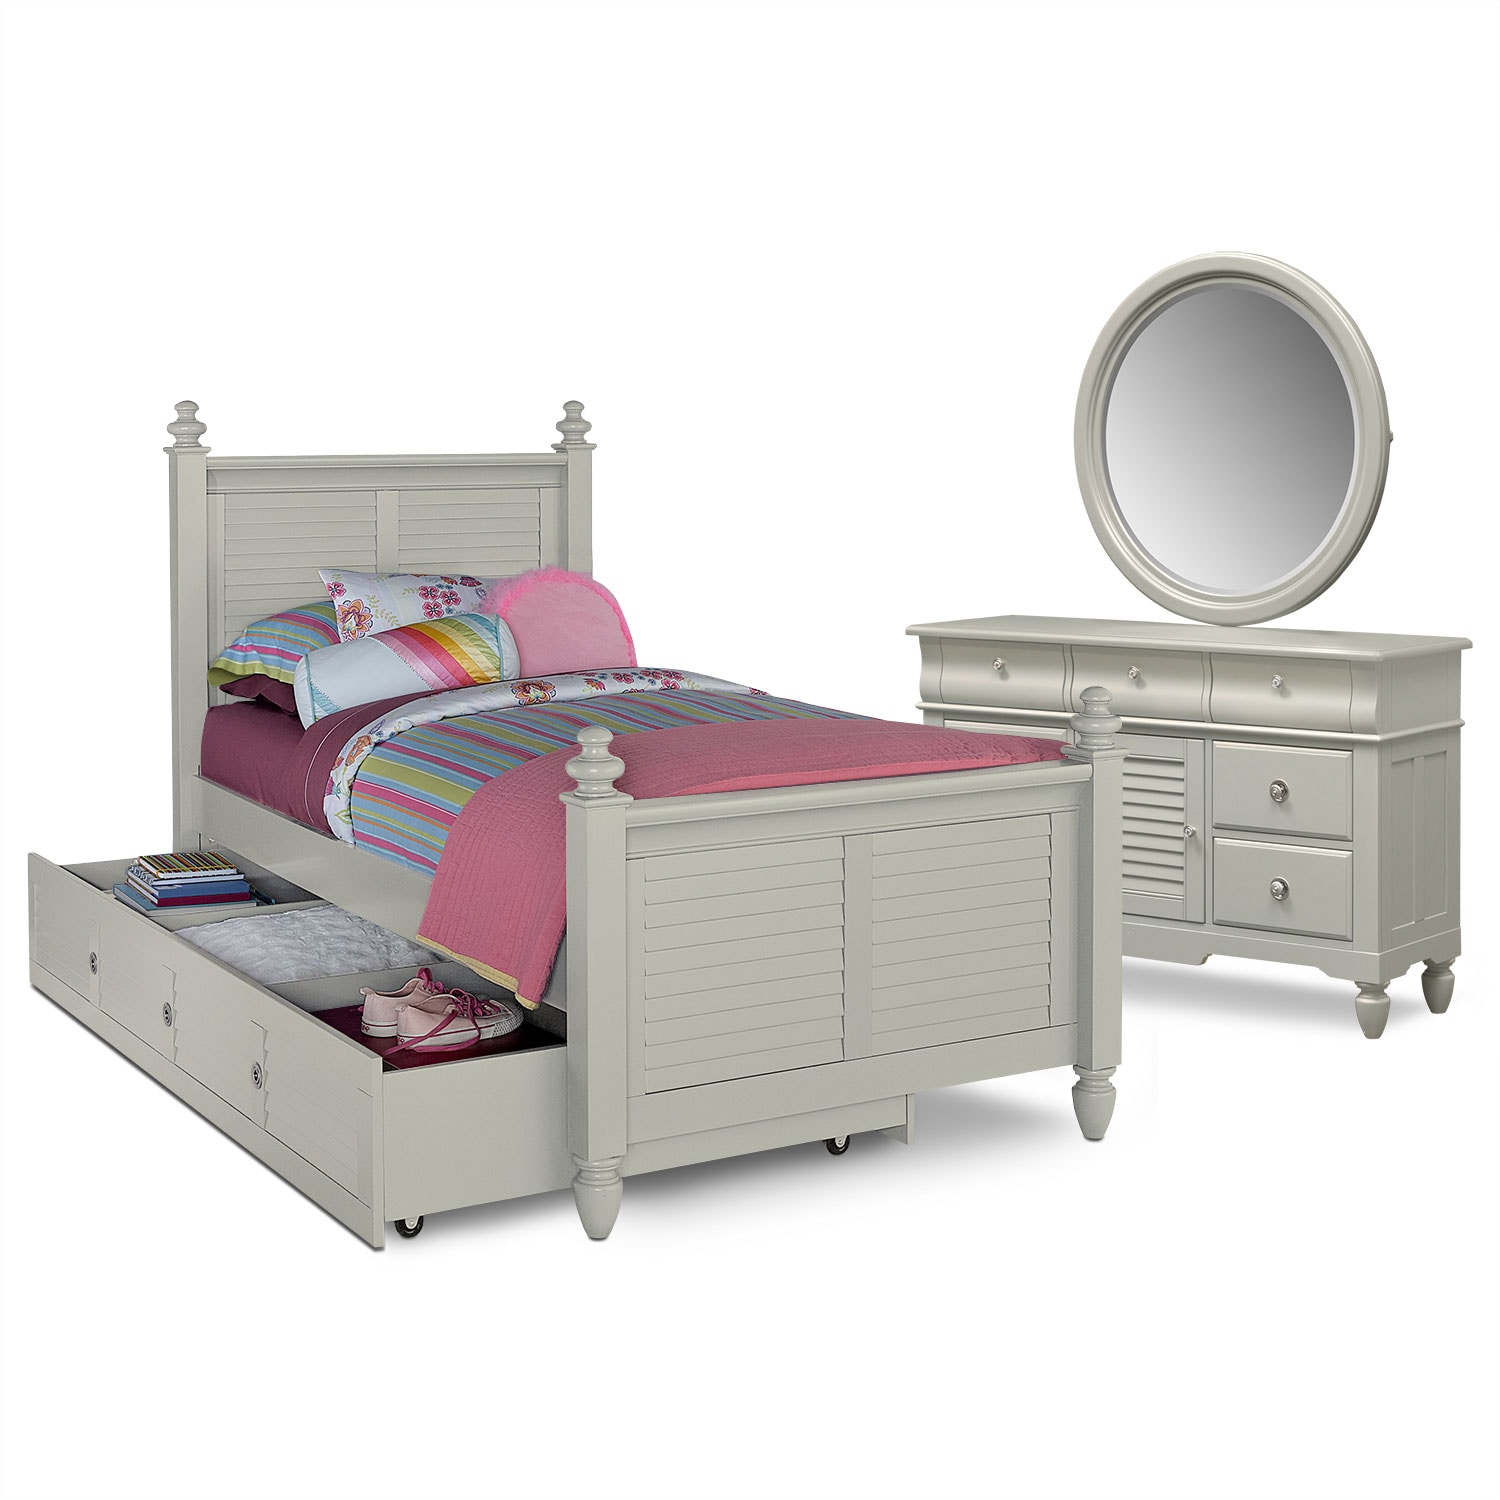 Seaside 6-Piece Twin Bedroom Set with Trundle - Gray